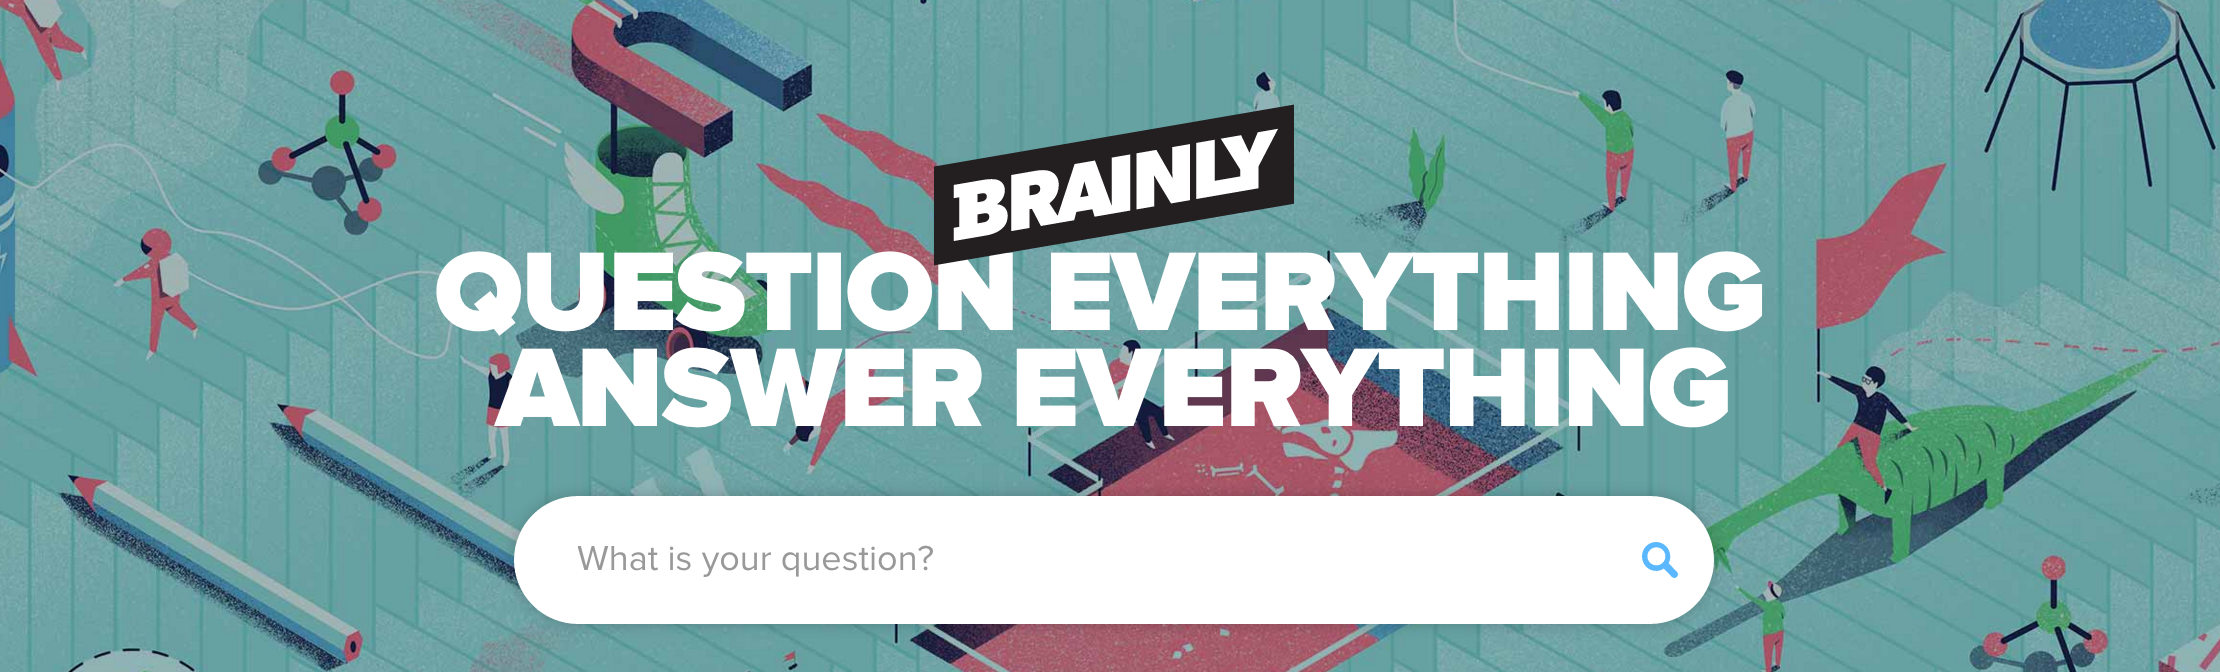 Getting Brainly - Impakter